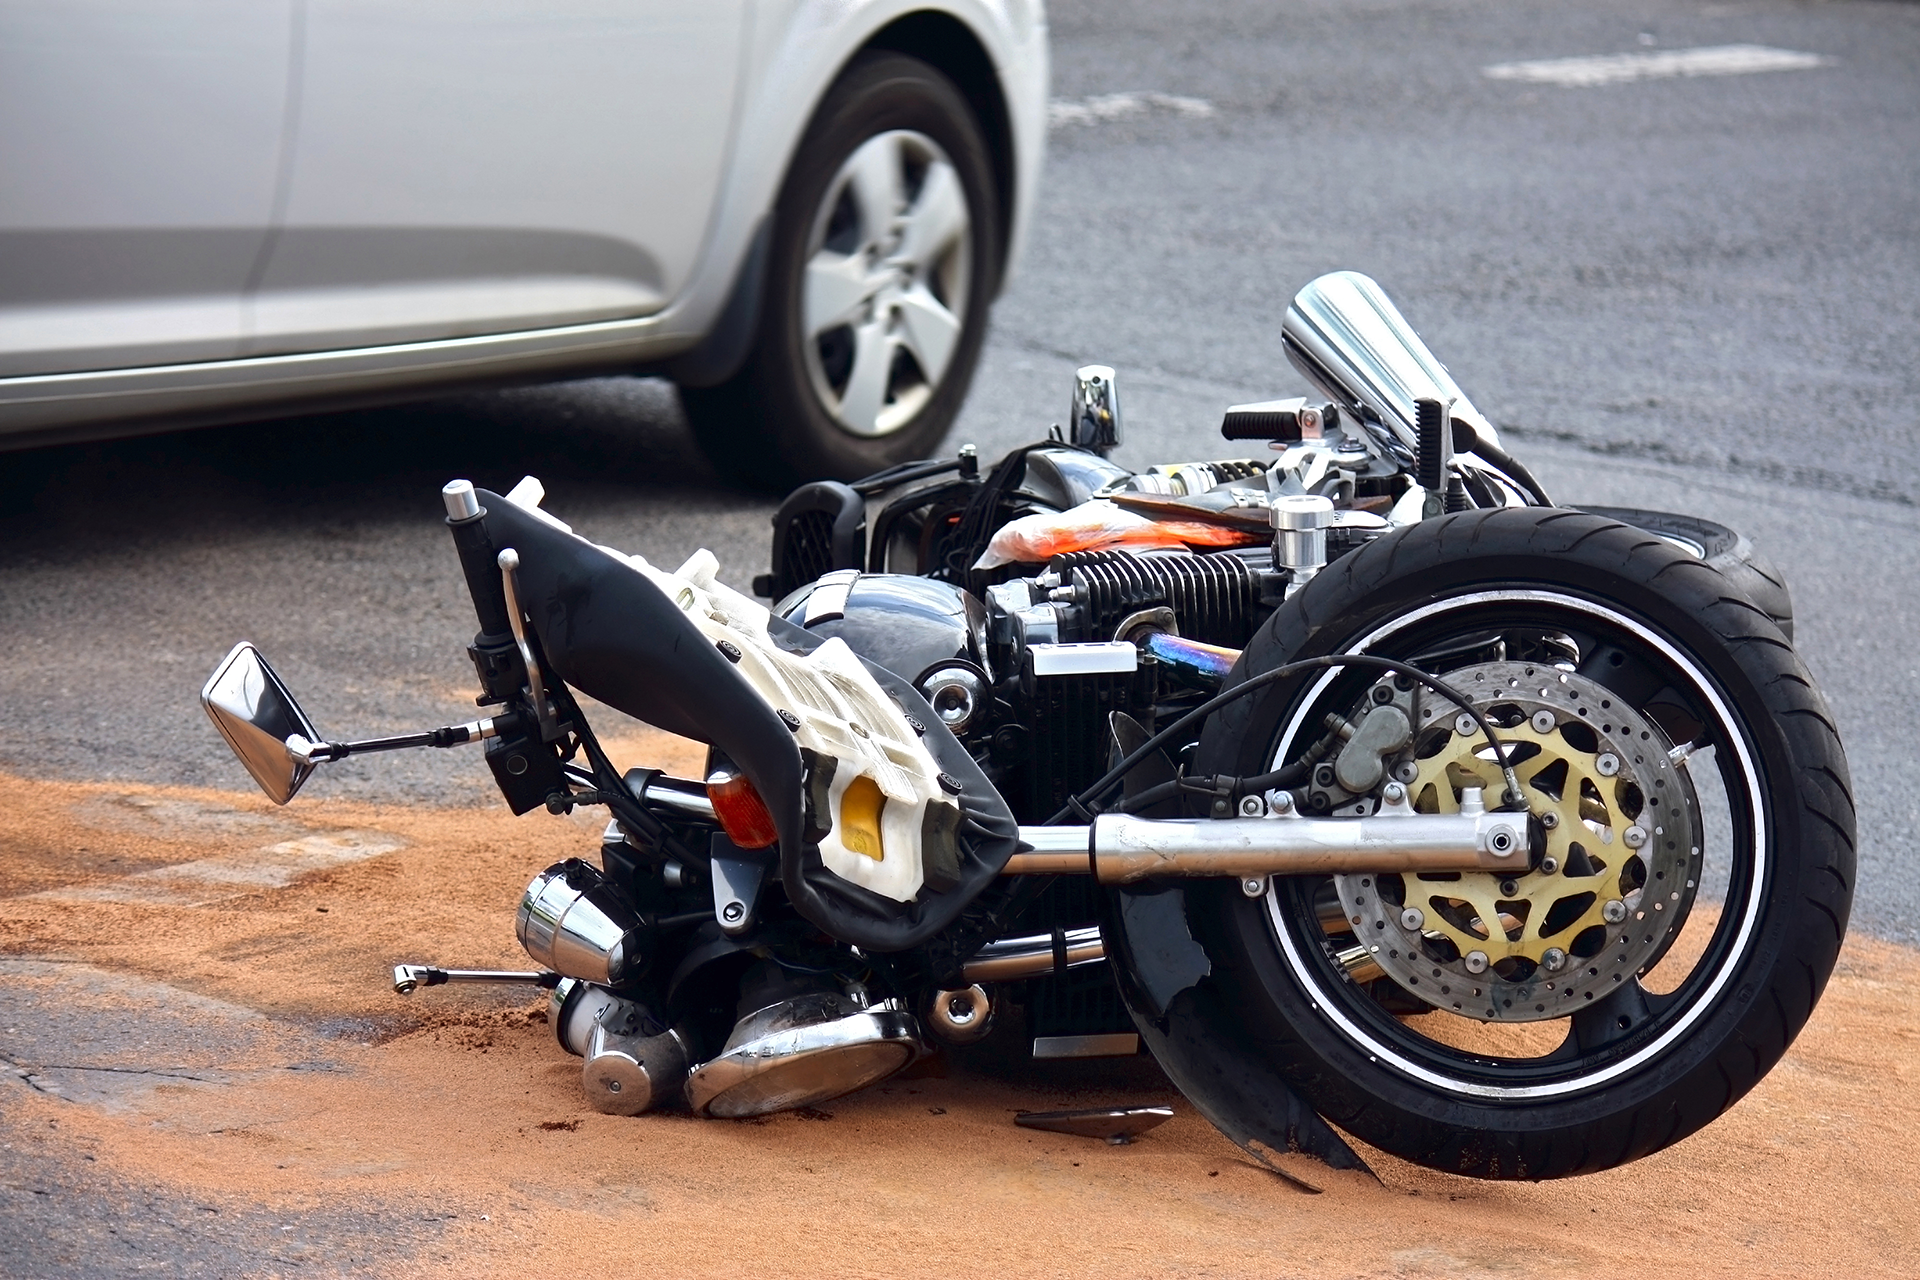 motorcycle accident lawyer rock hill